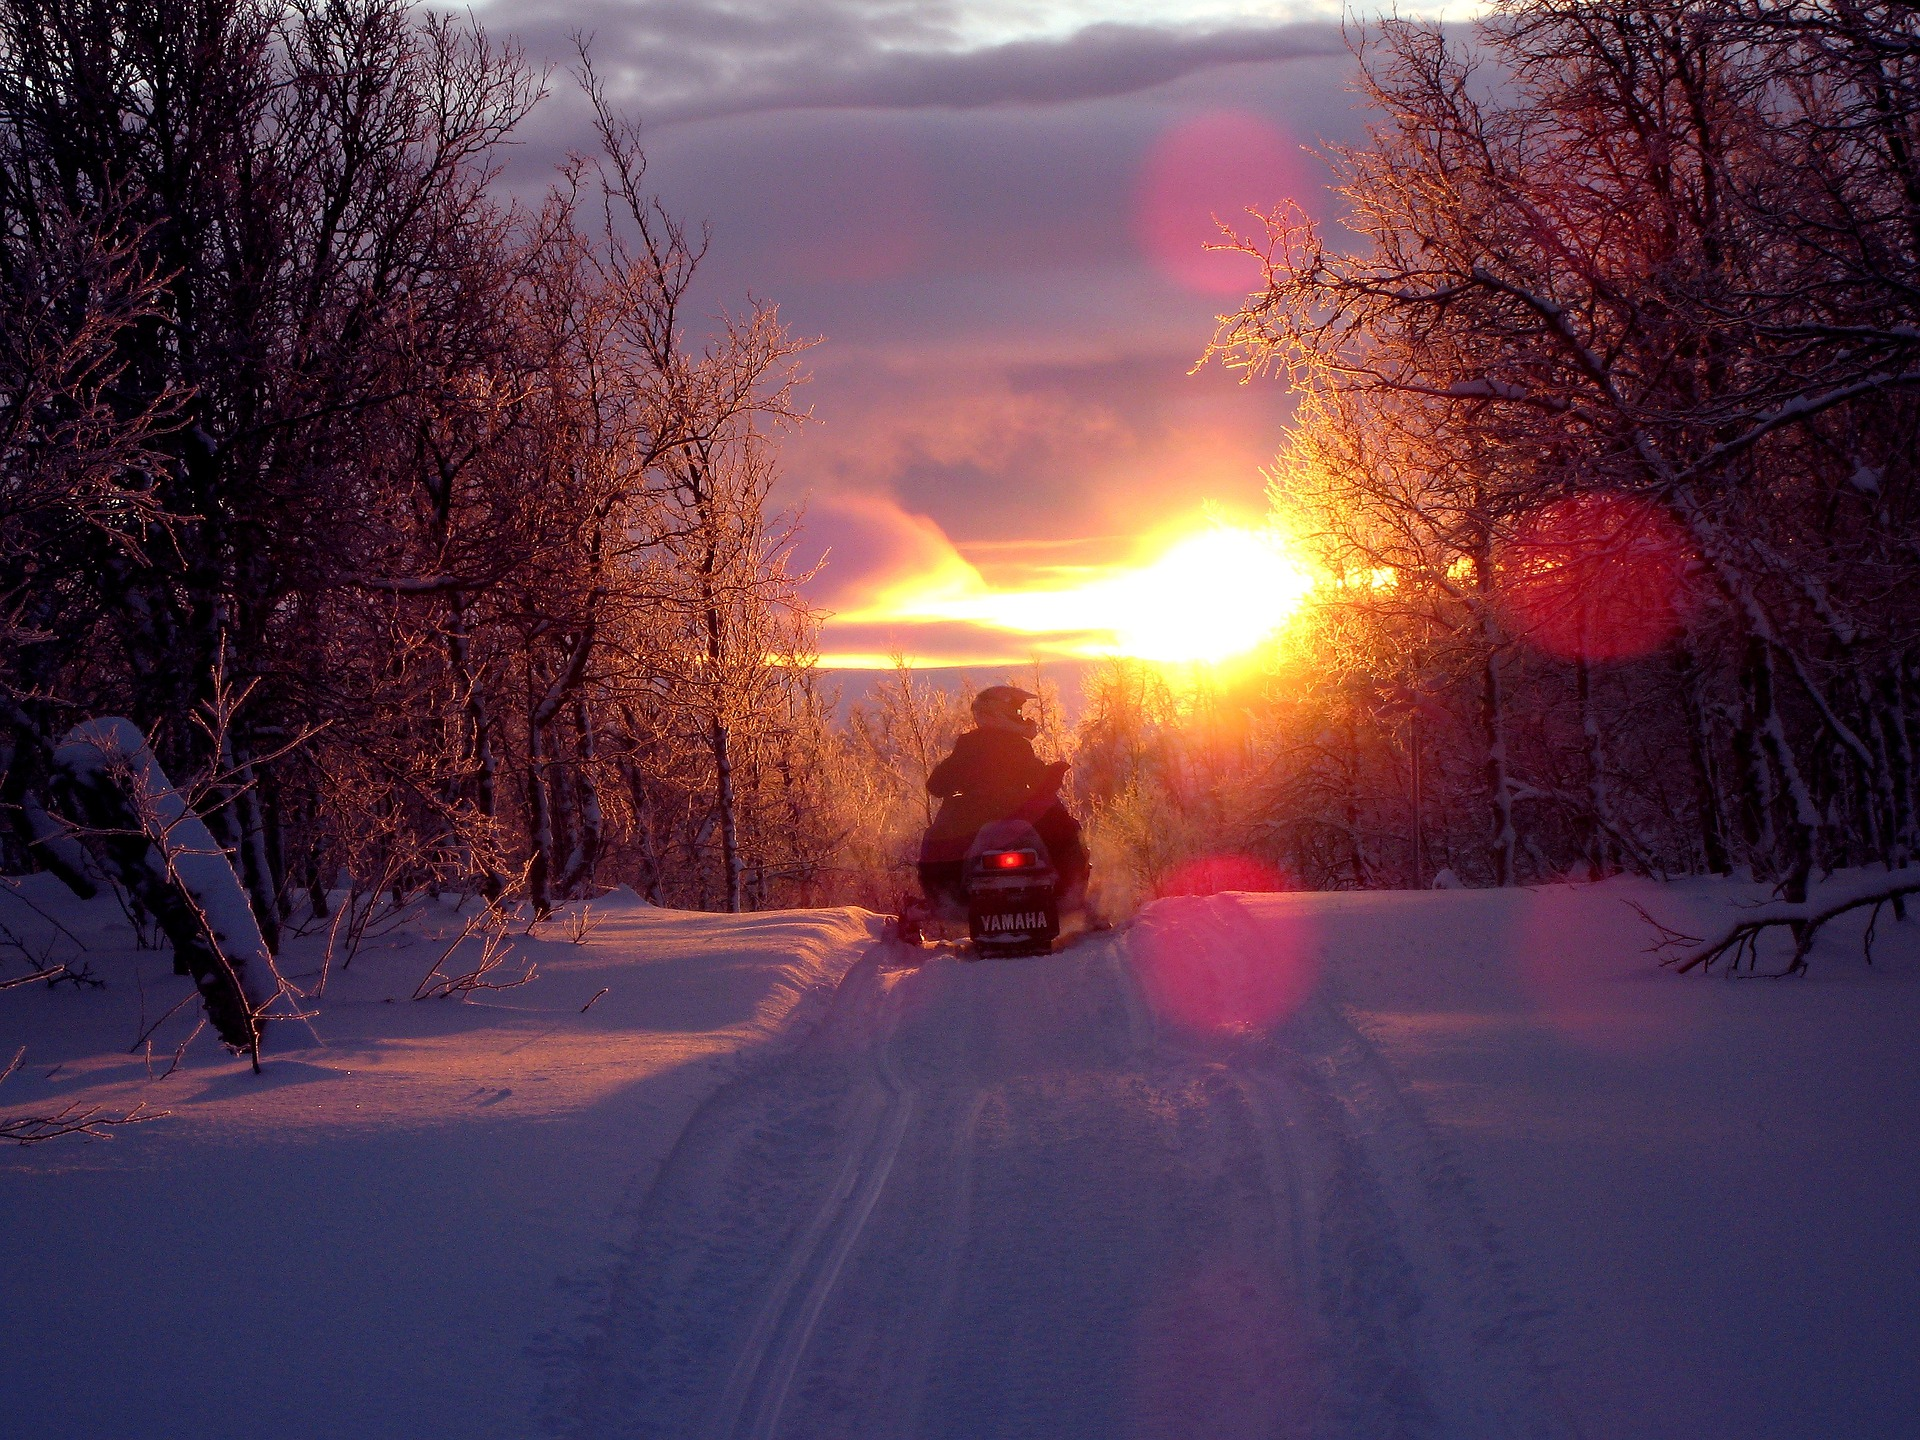 Snowmobile at sunset. (Fredrik Bäckman / Pixabay)